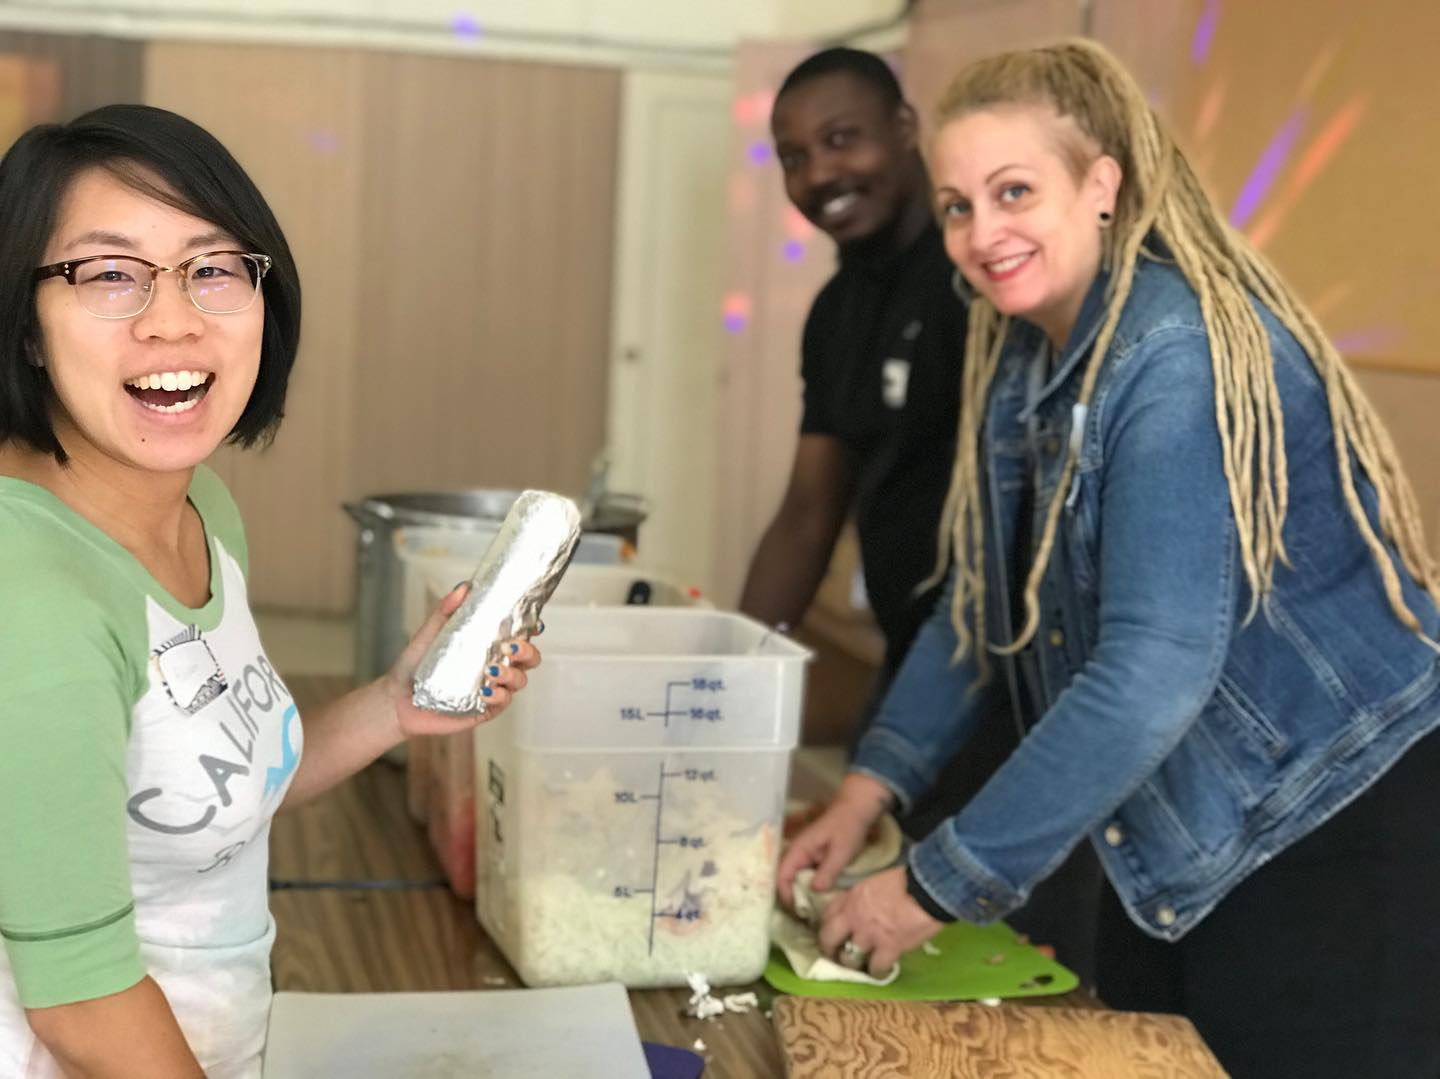 Volunteers with the East Oakland Burrito Roll prep, cook, wrap and deliver 500 vegan burritos to houseless individuals in East Oakland. Photo: East Oakland Burrito Roll